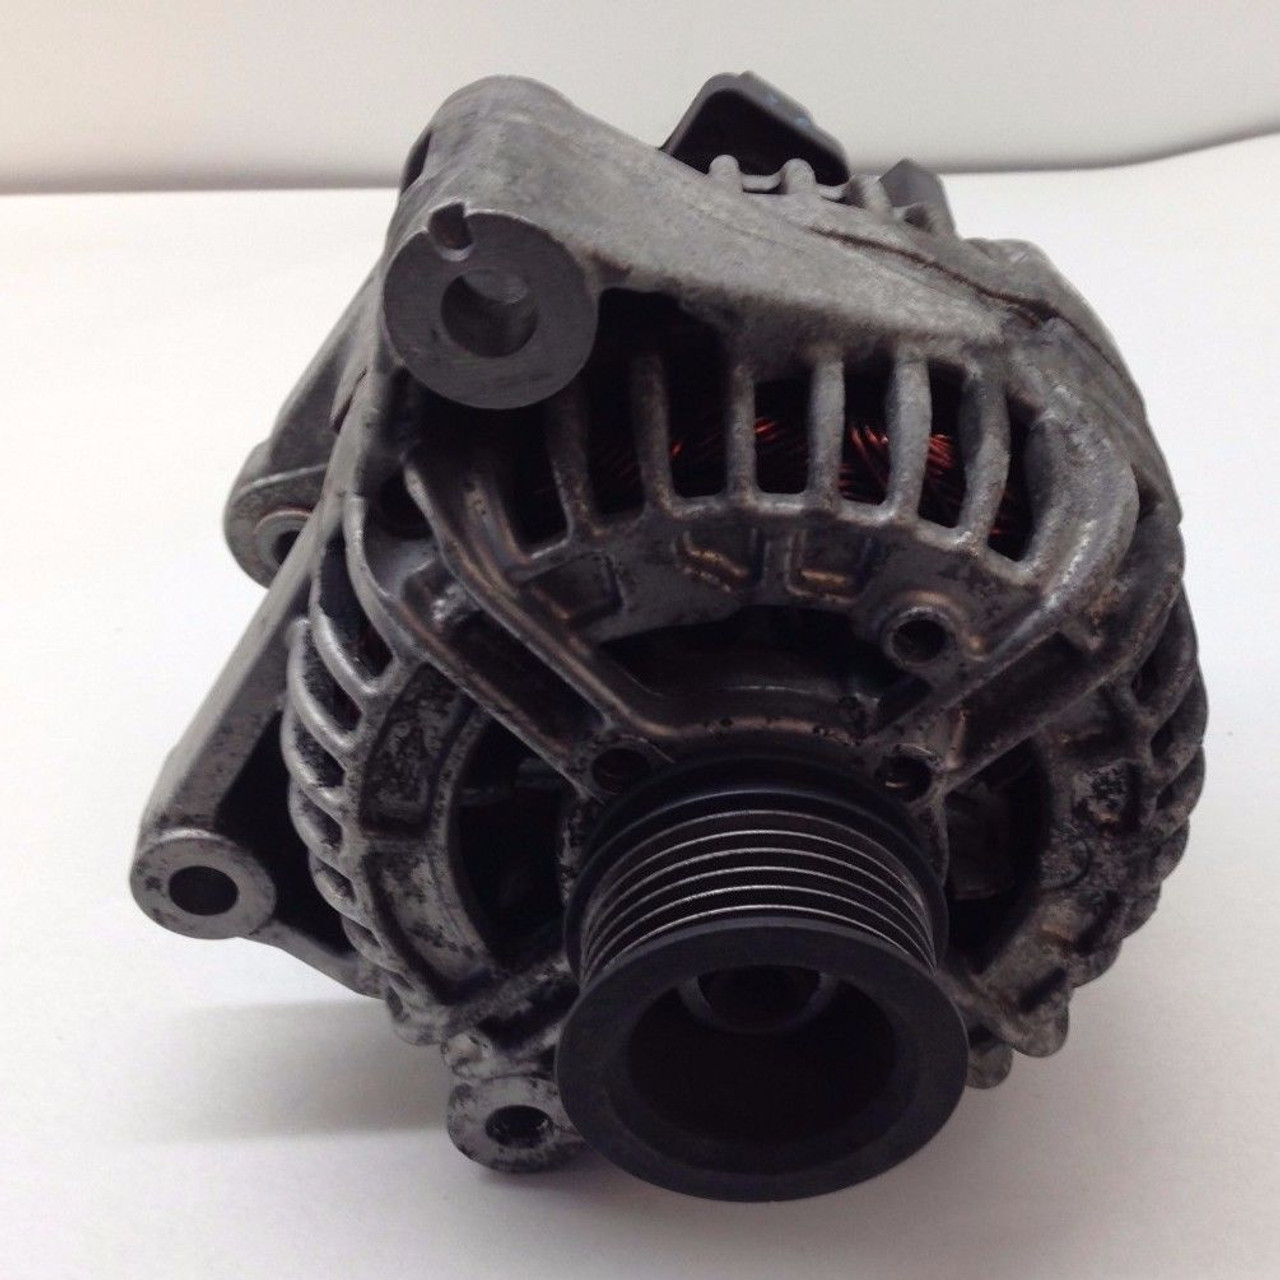 2005 Bmw Z4: 2003-2005 BMW Z4 OEM Alternator, Bosch 120 Amp 12317519620